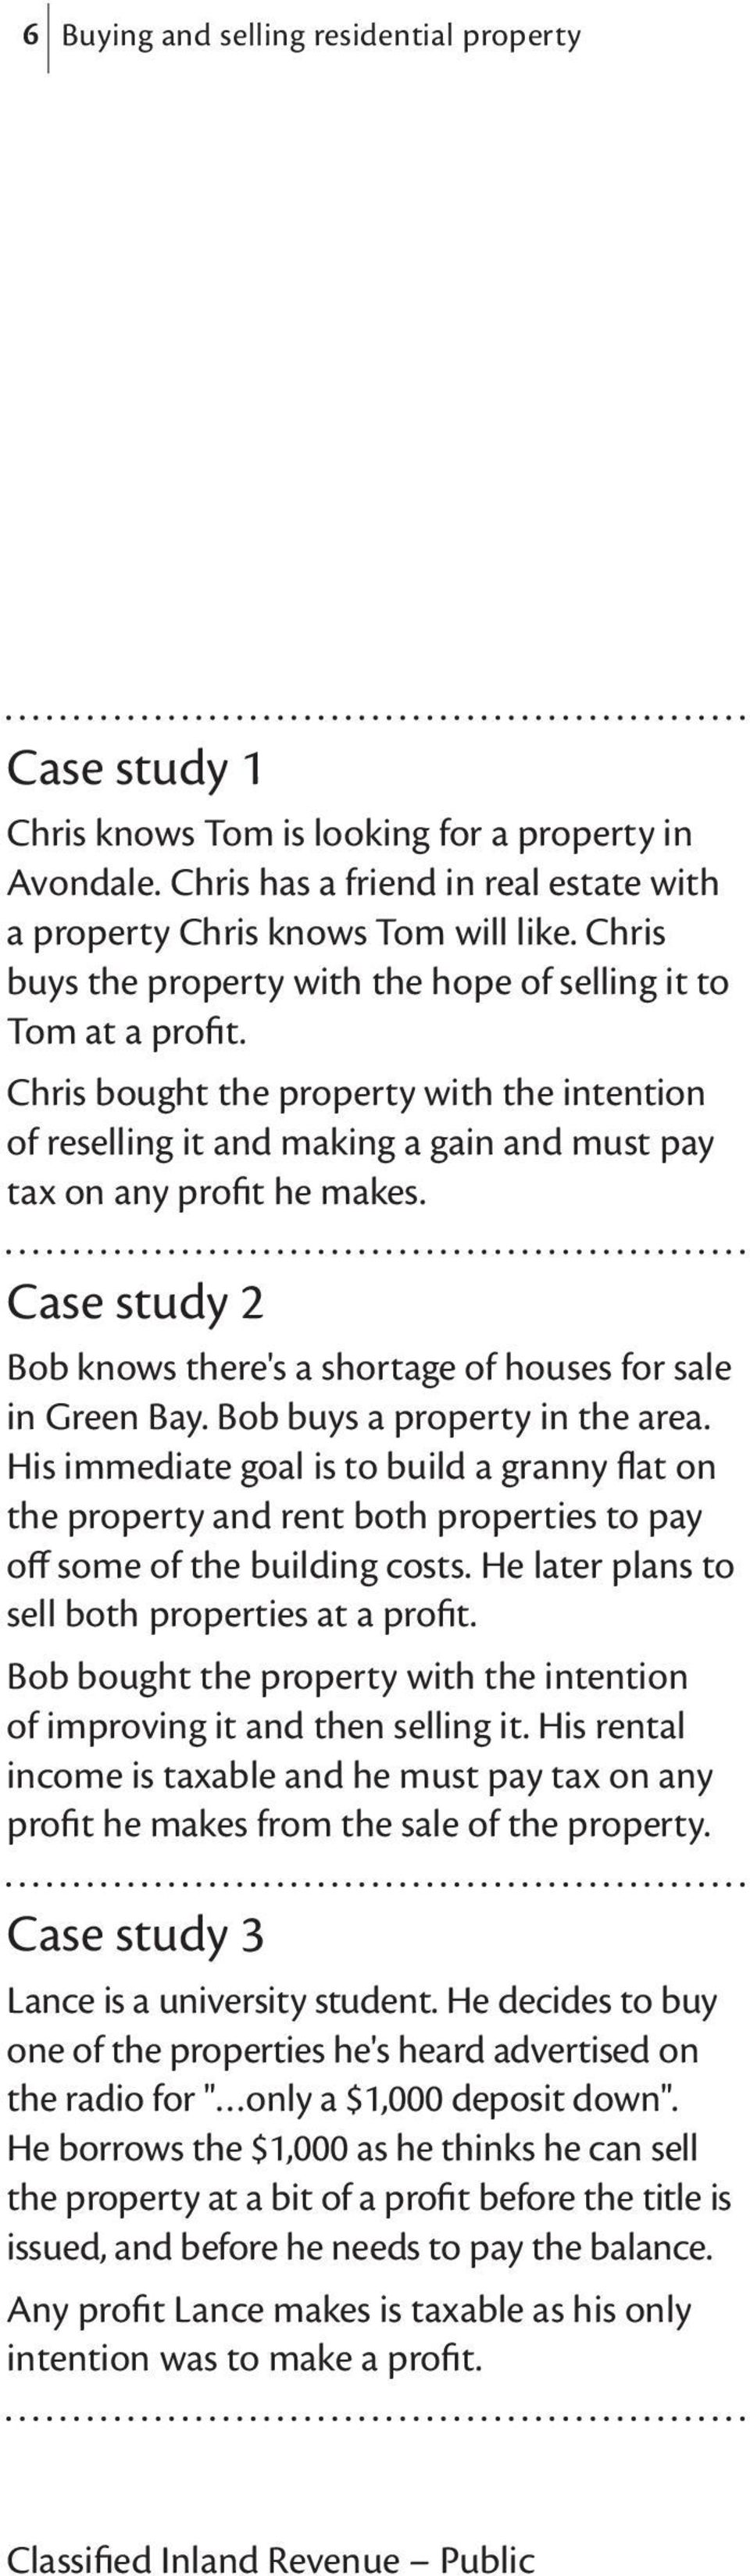 Case study 2 Bob knows there's a shortage of houses for sale in Green Bay. Bob buys a property in the area.